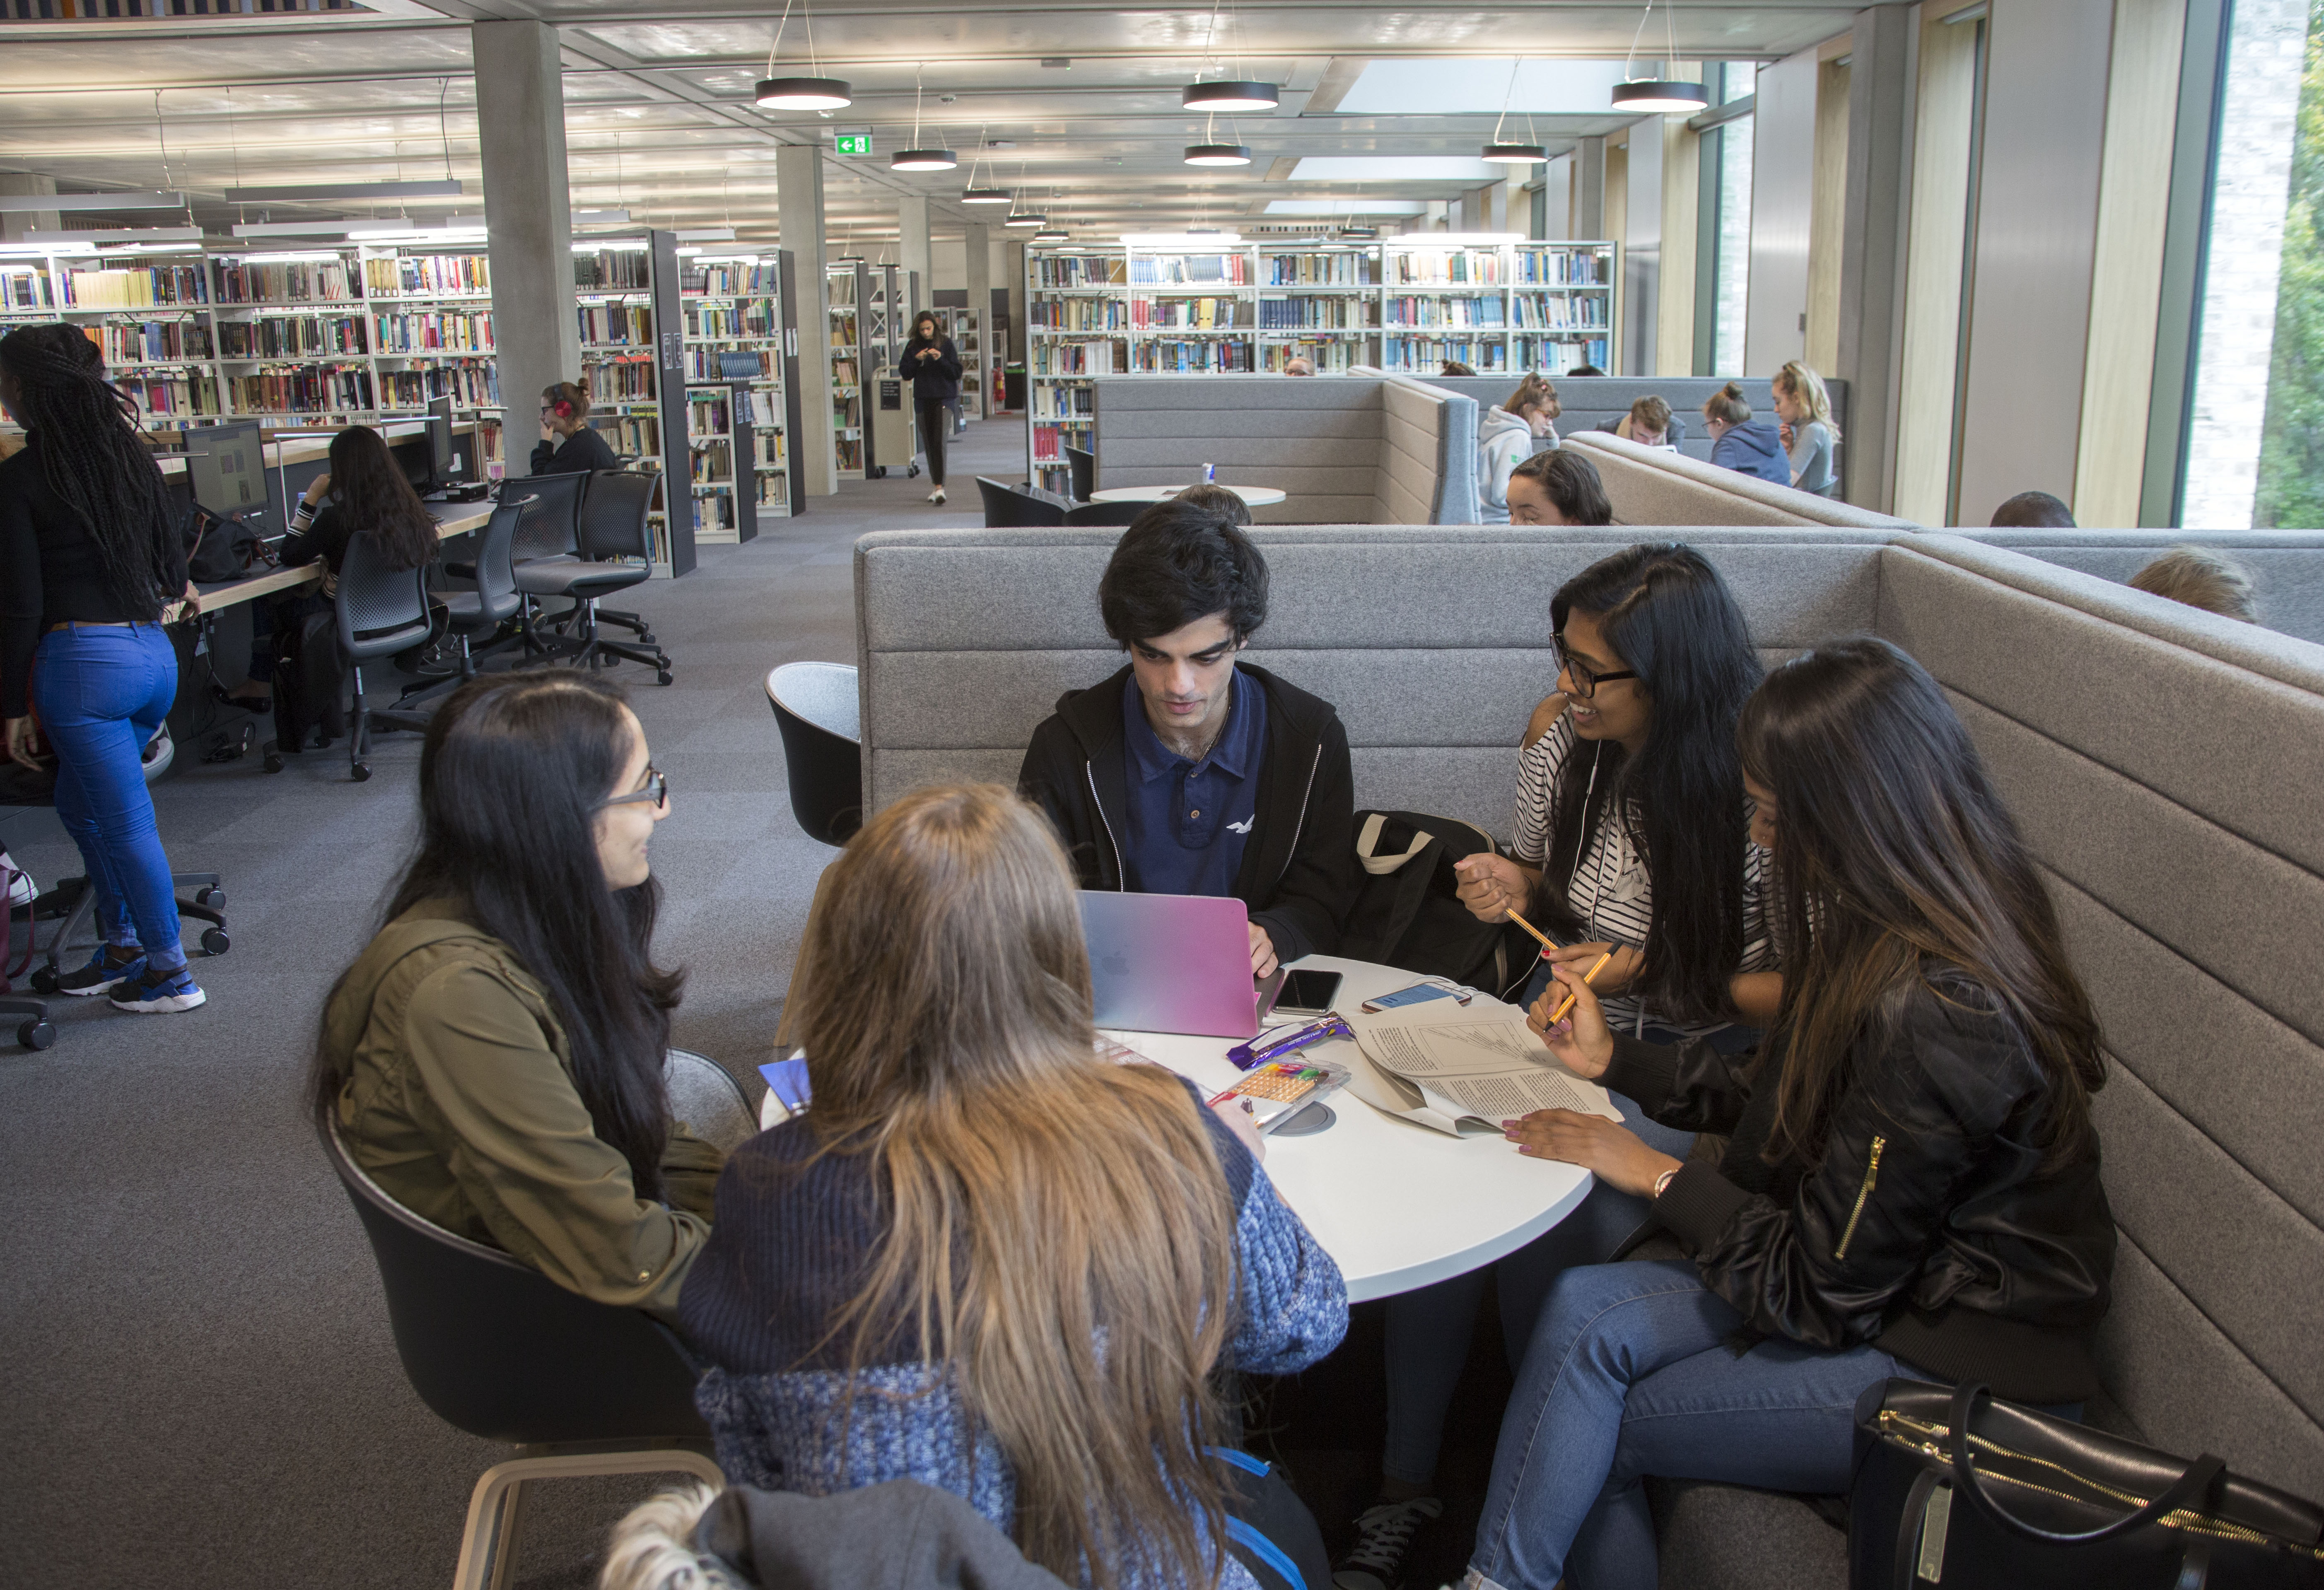 A group of students studying together on a busy First Floor